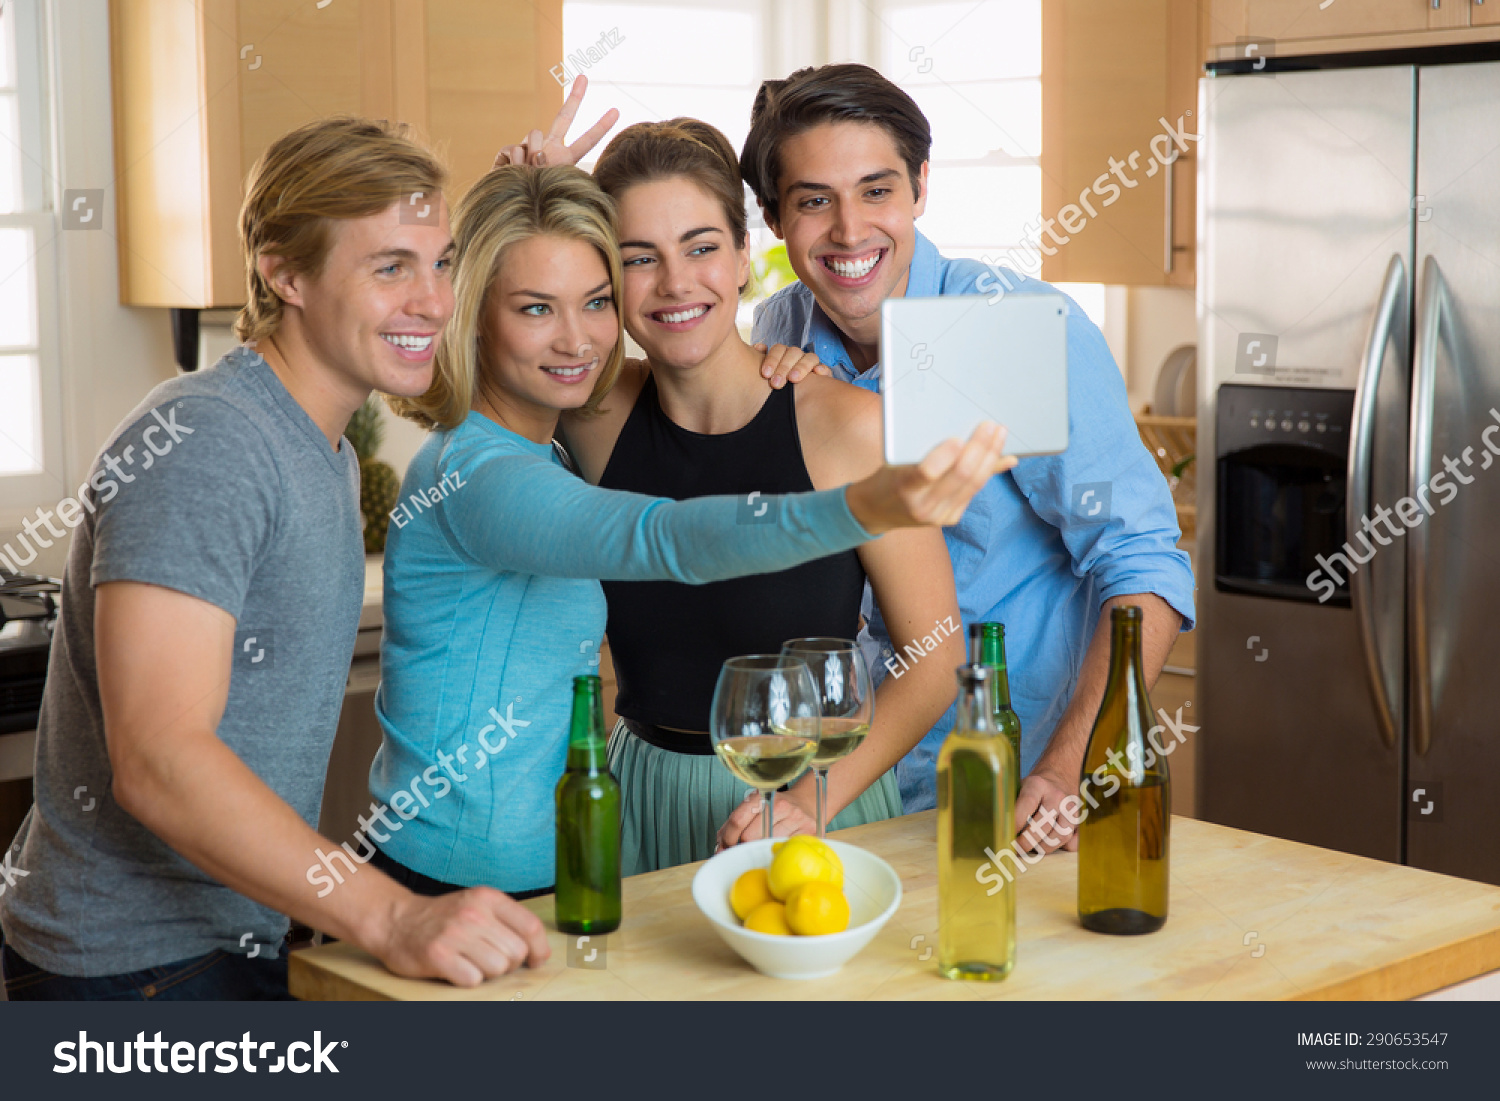 Best Friends Group Together Selfie Kitchen Stock Photo (Royalty Free ...